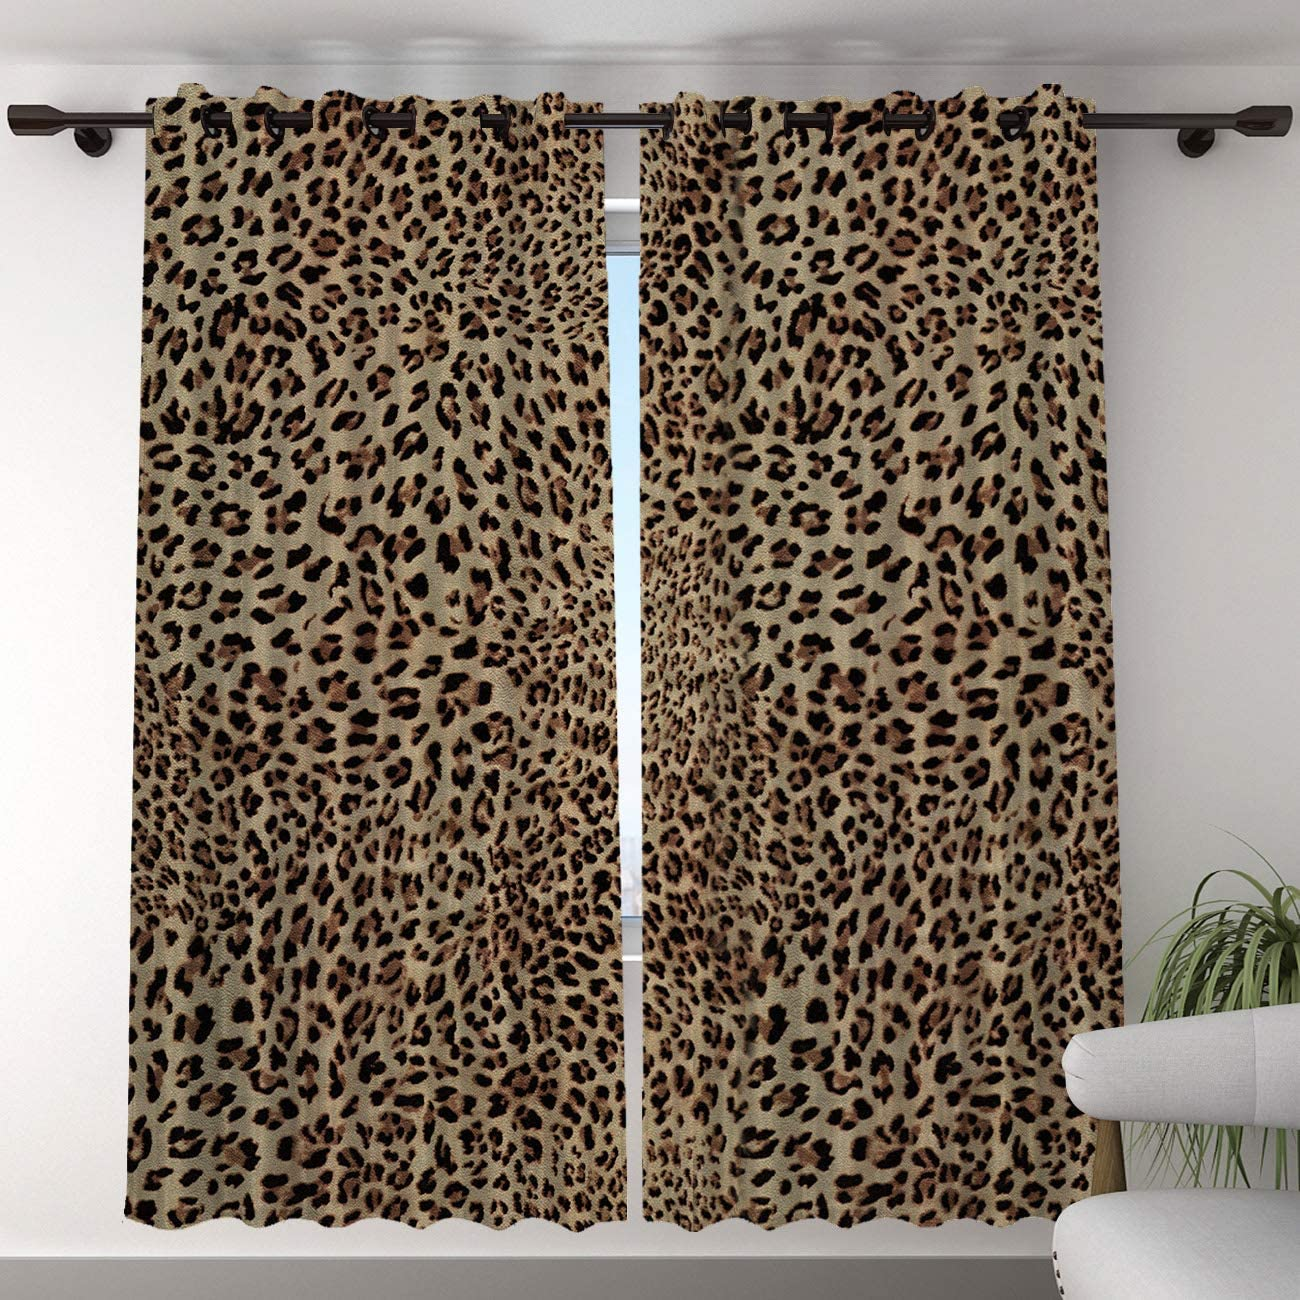 TH Max 66% Discount is also underway OFF Home Blackout Curtain for Bedroom D - Darkening Long inch 96